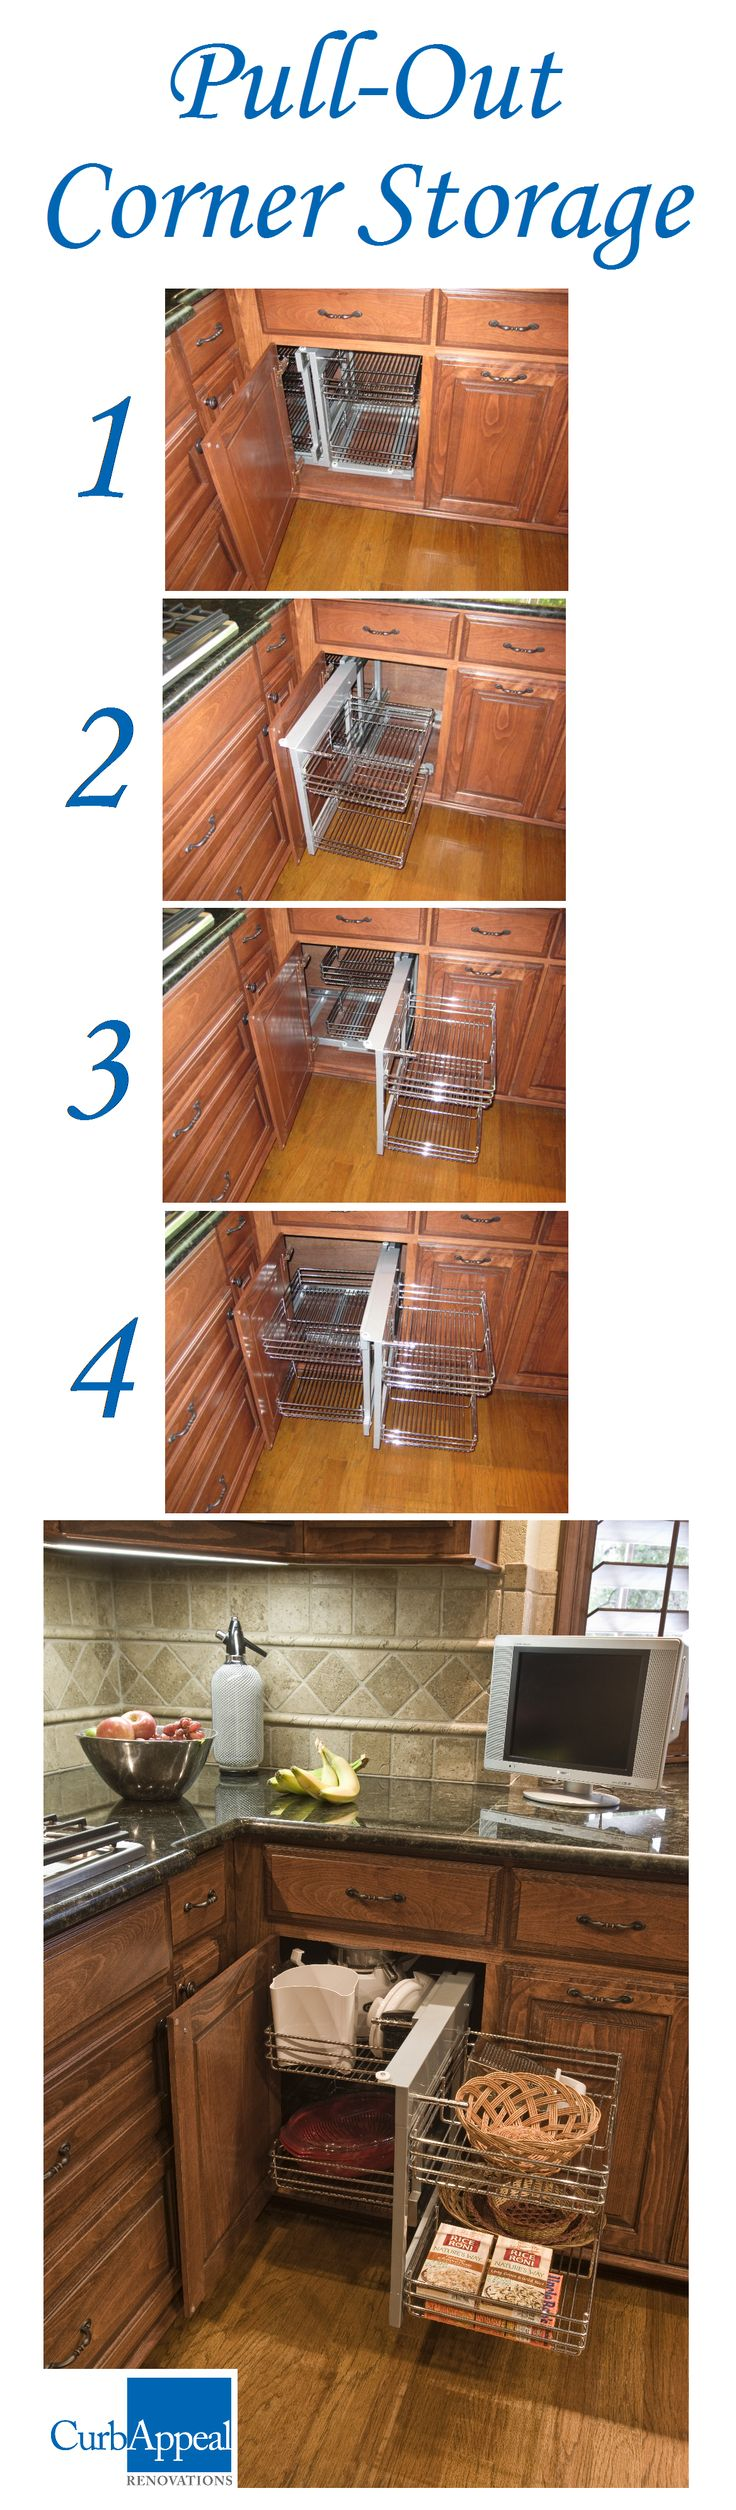 "This corner storage shelving unit helps you maximize storage space in your kitchen! It holds a lot more than a circular ""lazy susan"", and is very easy to glide in and out of the cabinet."